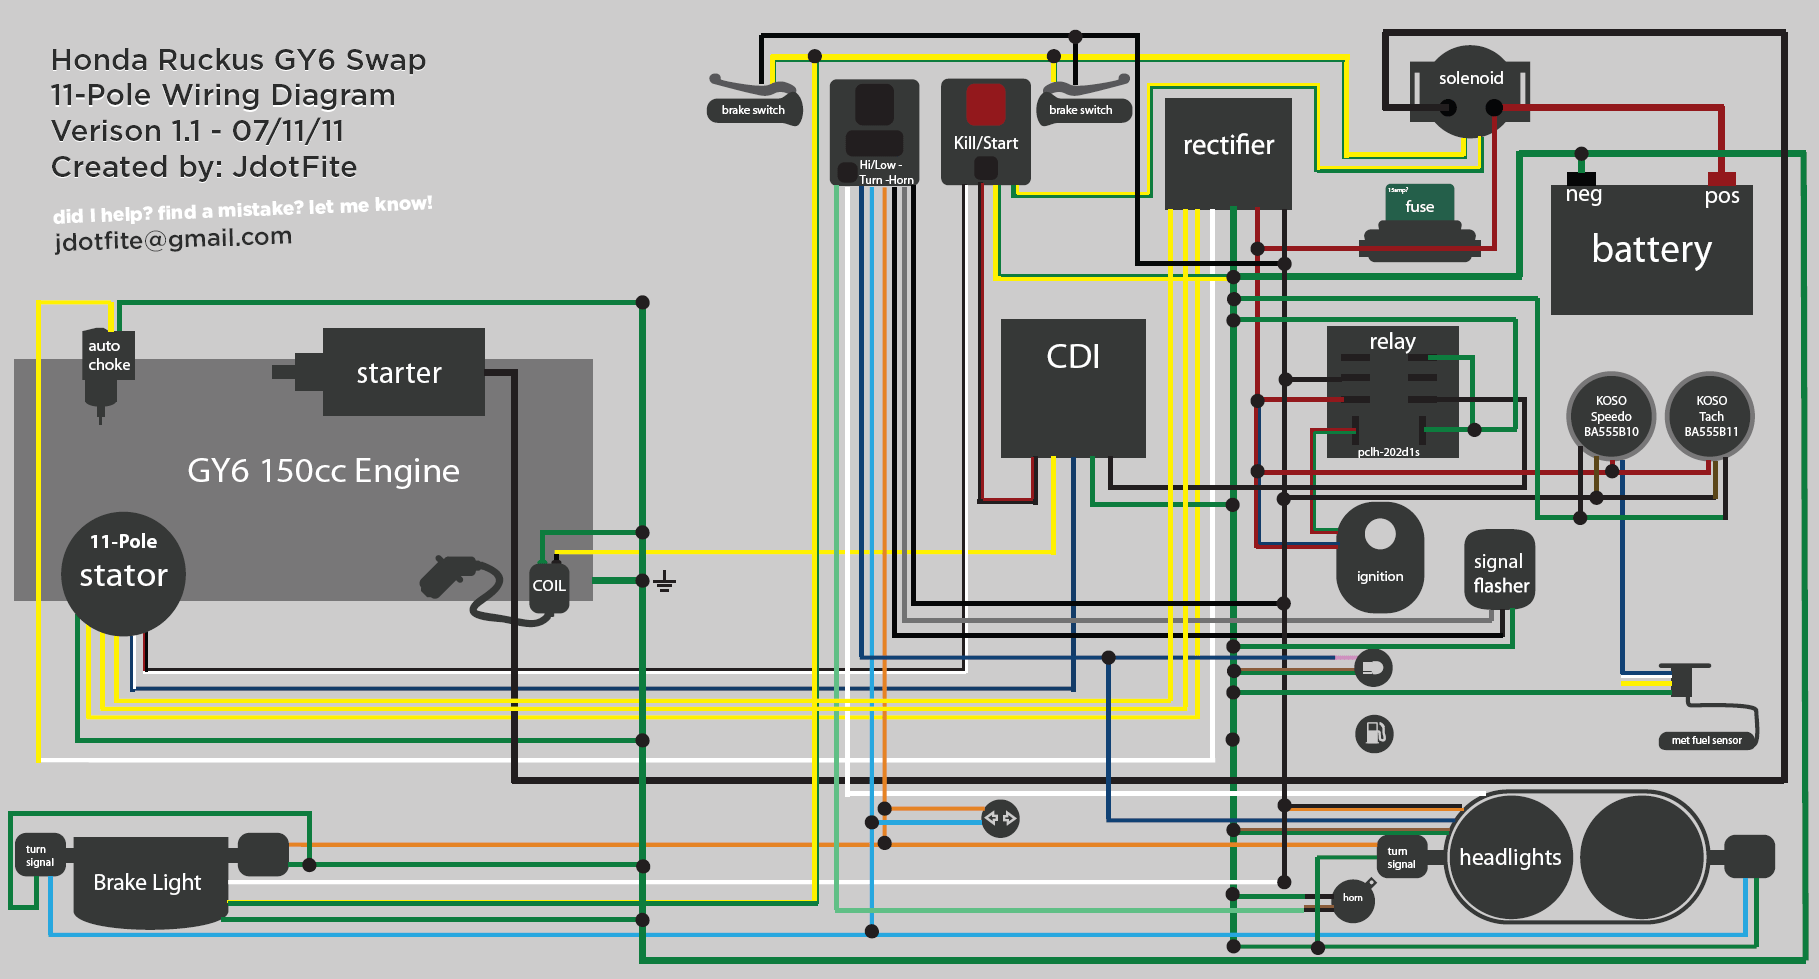 ruckus gy6 wiring diagram gy6 wiring harness diagram gy6 ignition wiring diagram \u2022 free gy6 scooter wiring diagram at soozxer.org